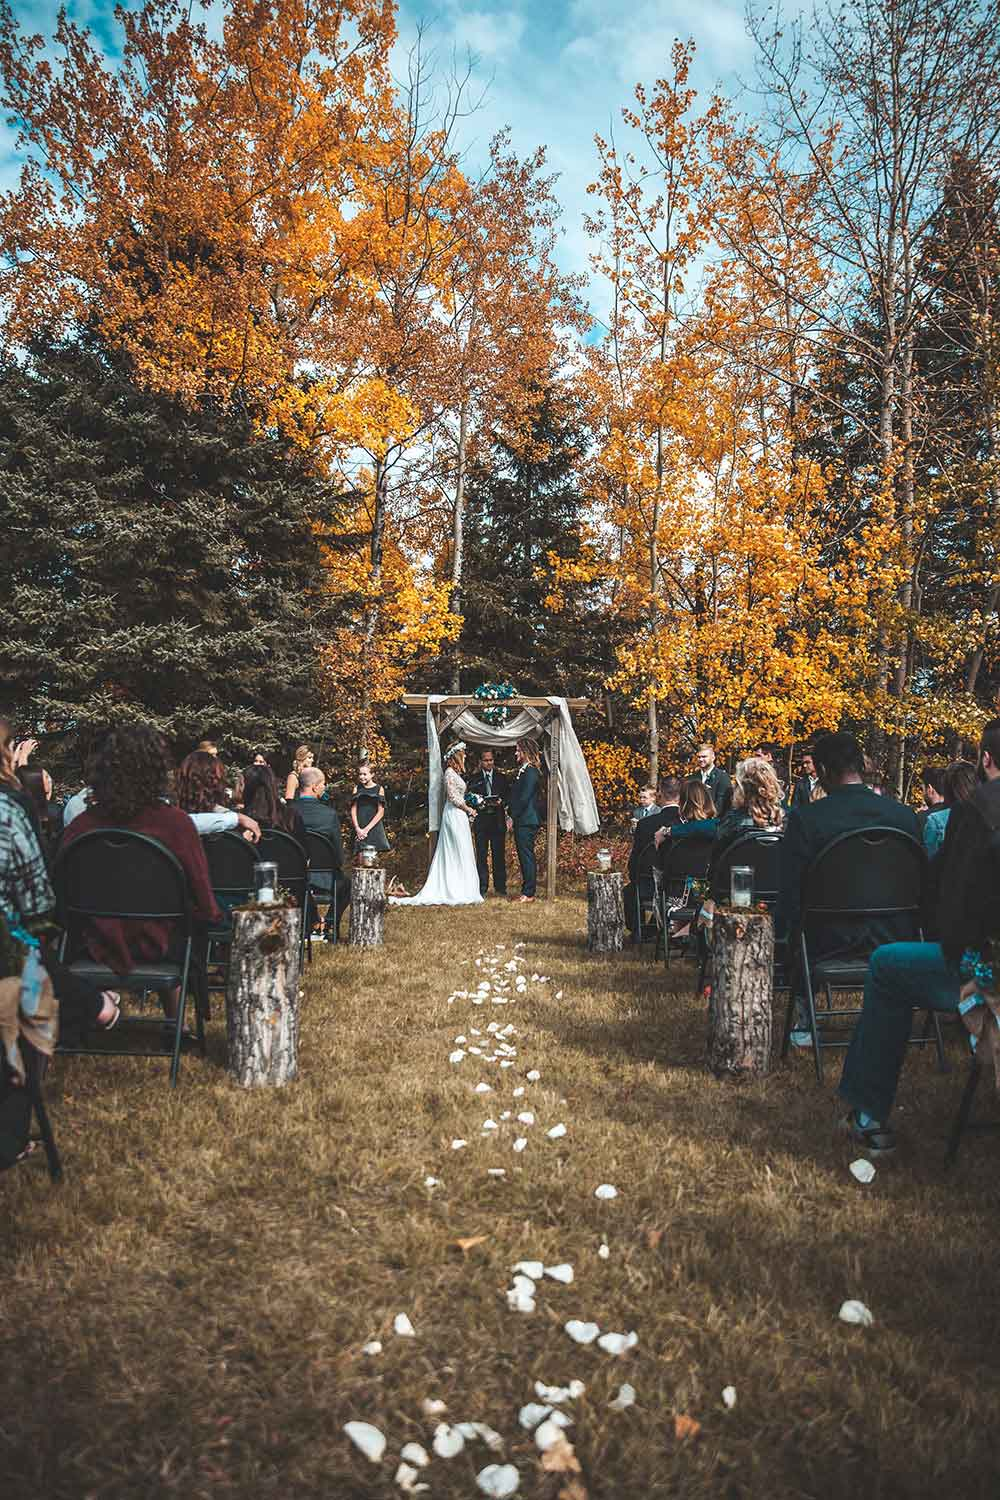 olivesky_weddings28.jpg